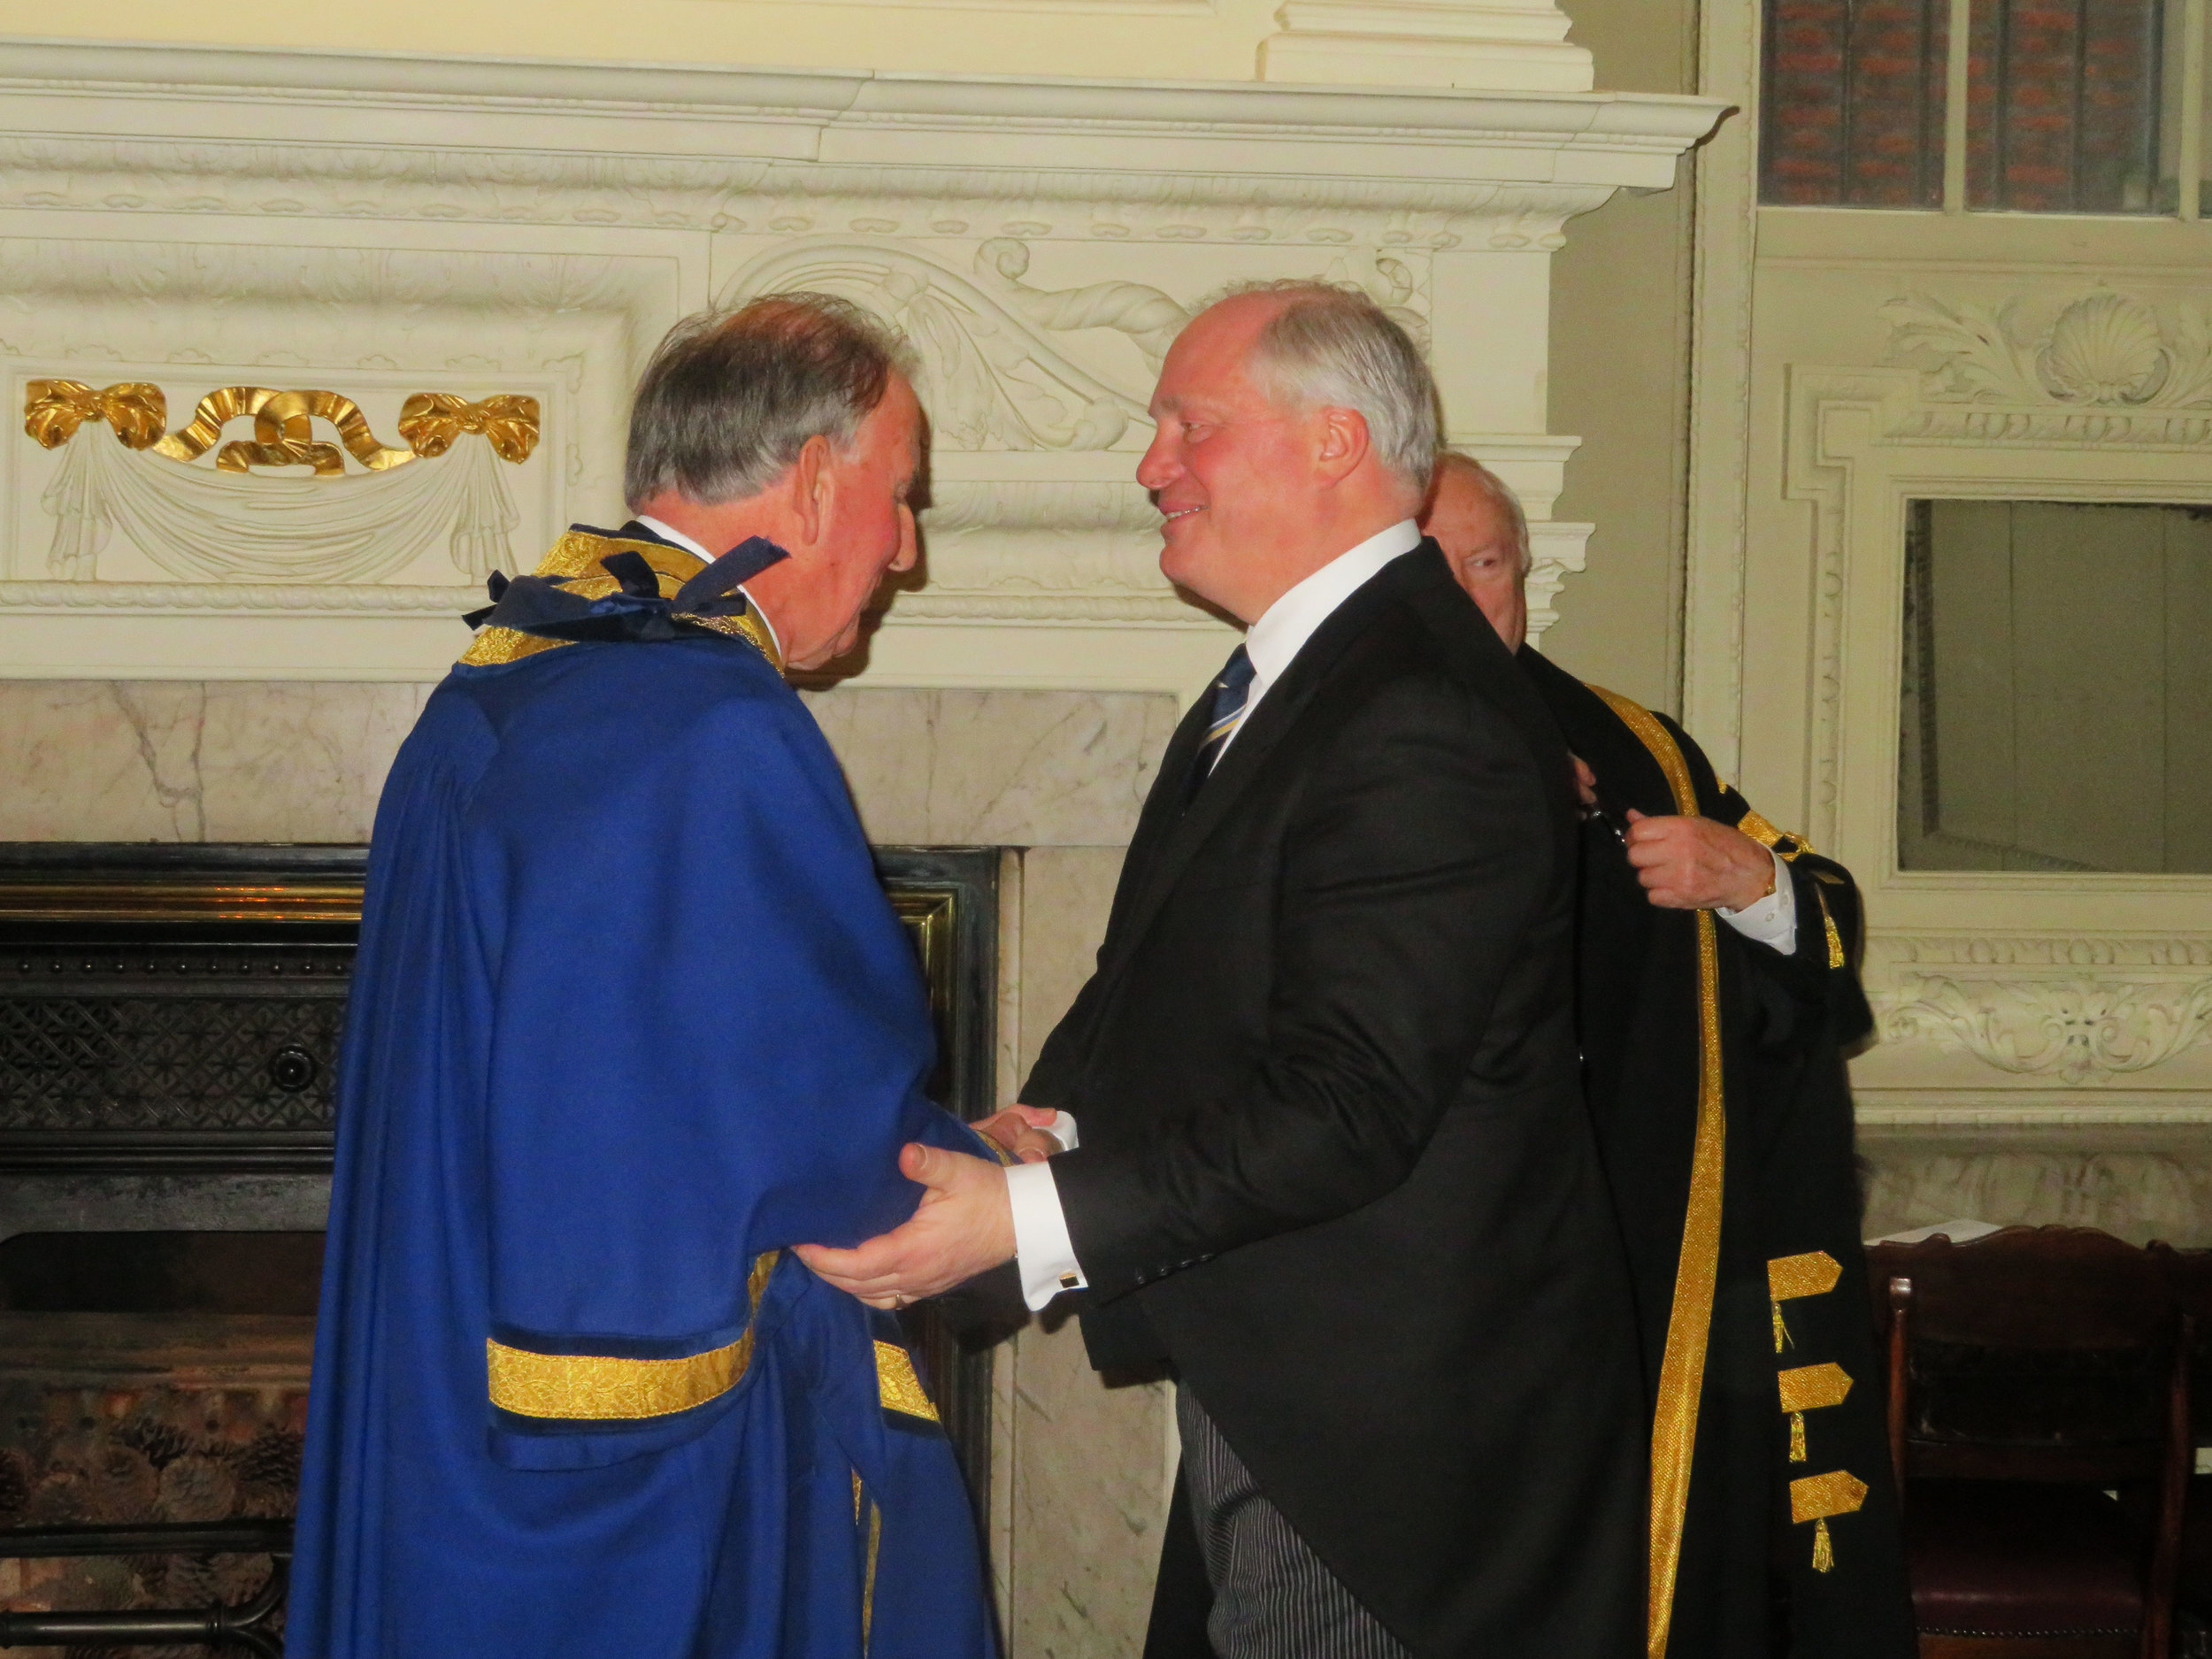 Master John Walsham being congratulated by PM Paul Constantinidi